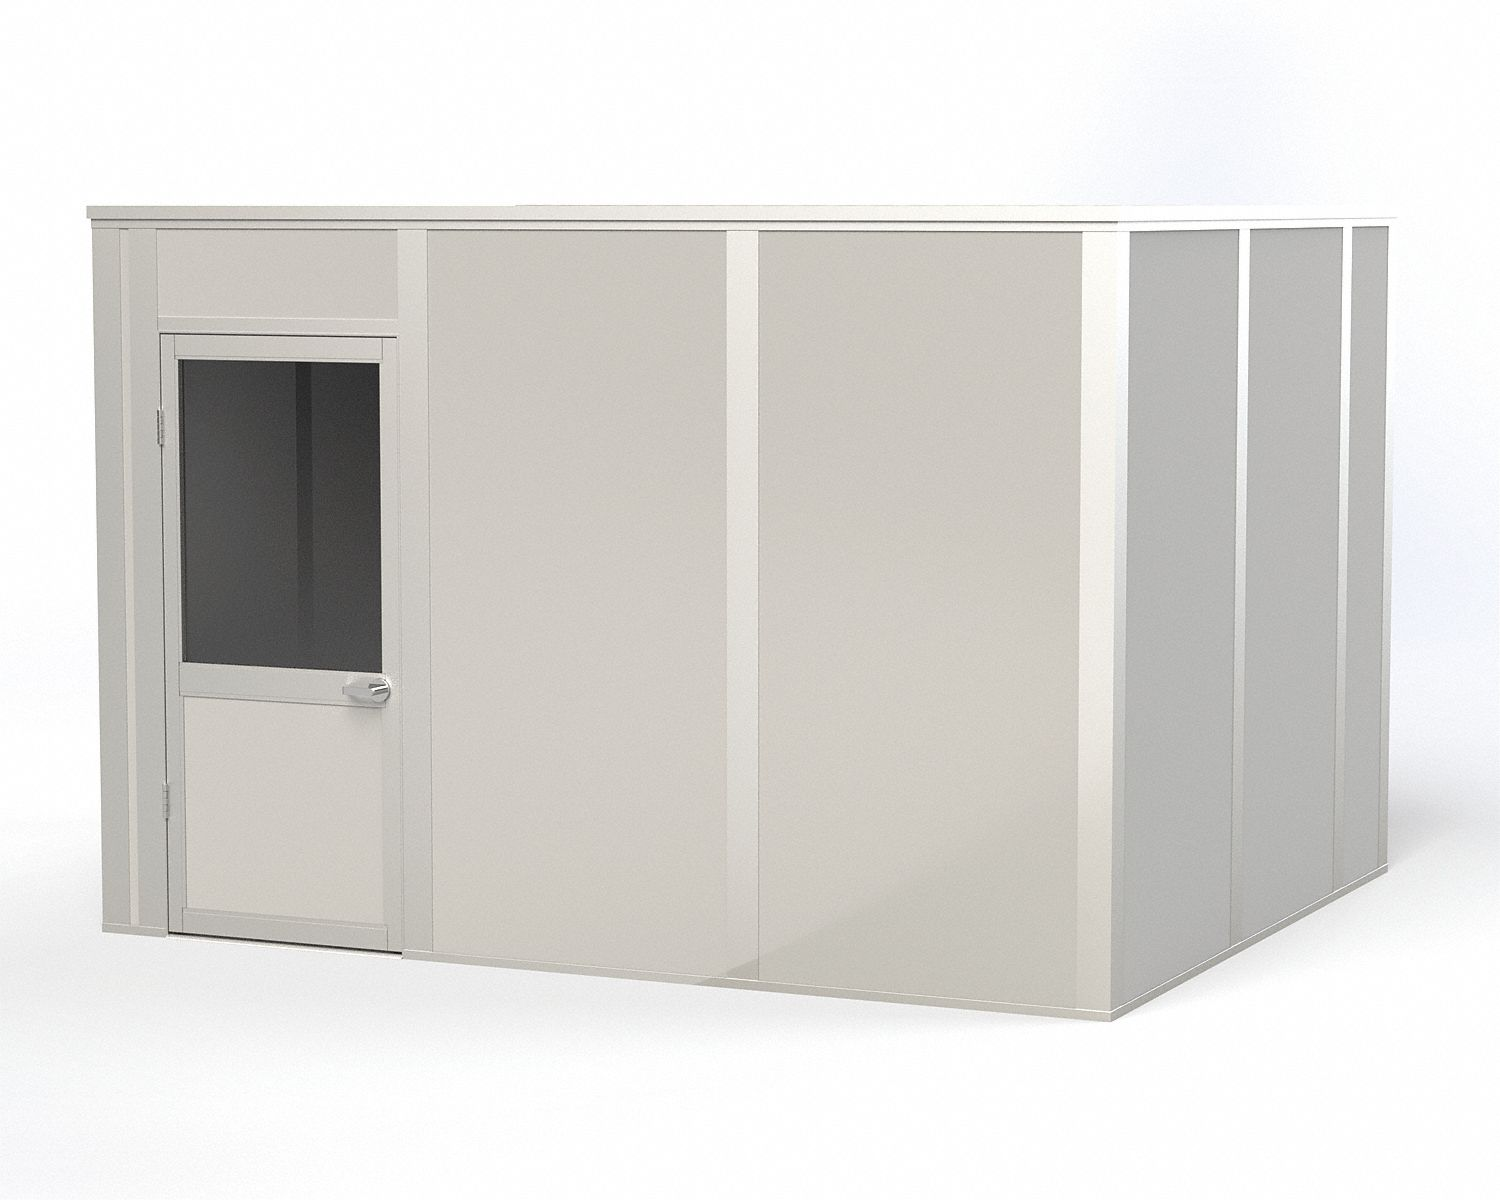 Modular In-Plant Office,  4-Wall,  12 ft. Width,  10 ft. Depth,  8 ft. Height